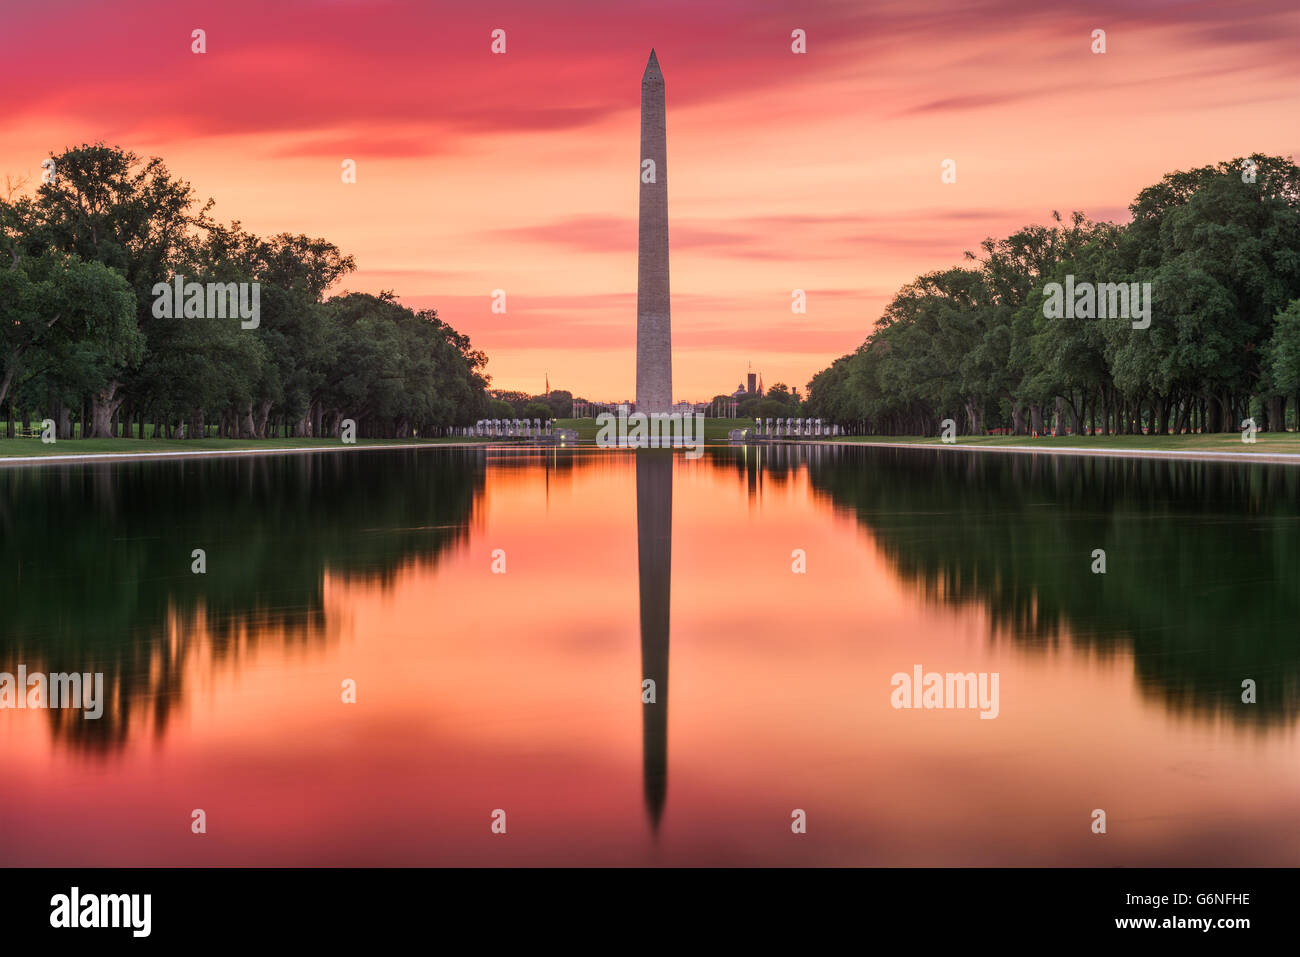 Washington DC at the Reflecting Pool and Washington Monument. - Stock Image